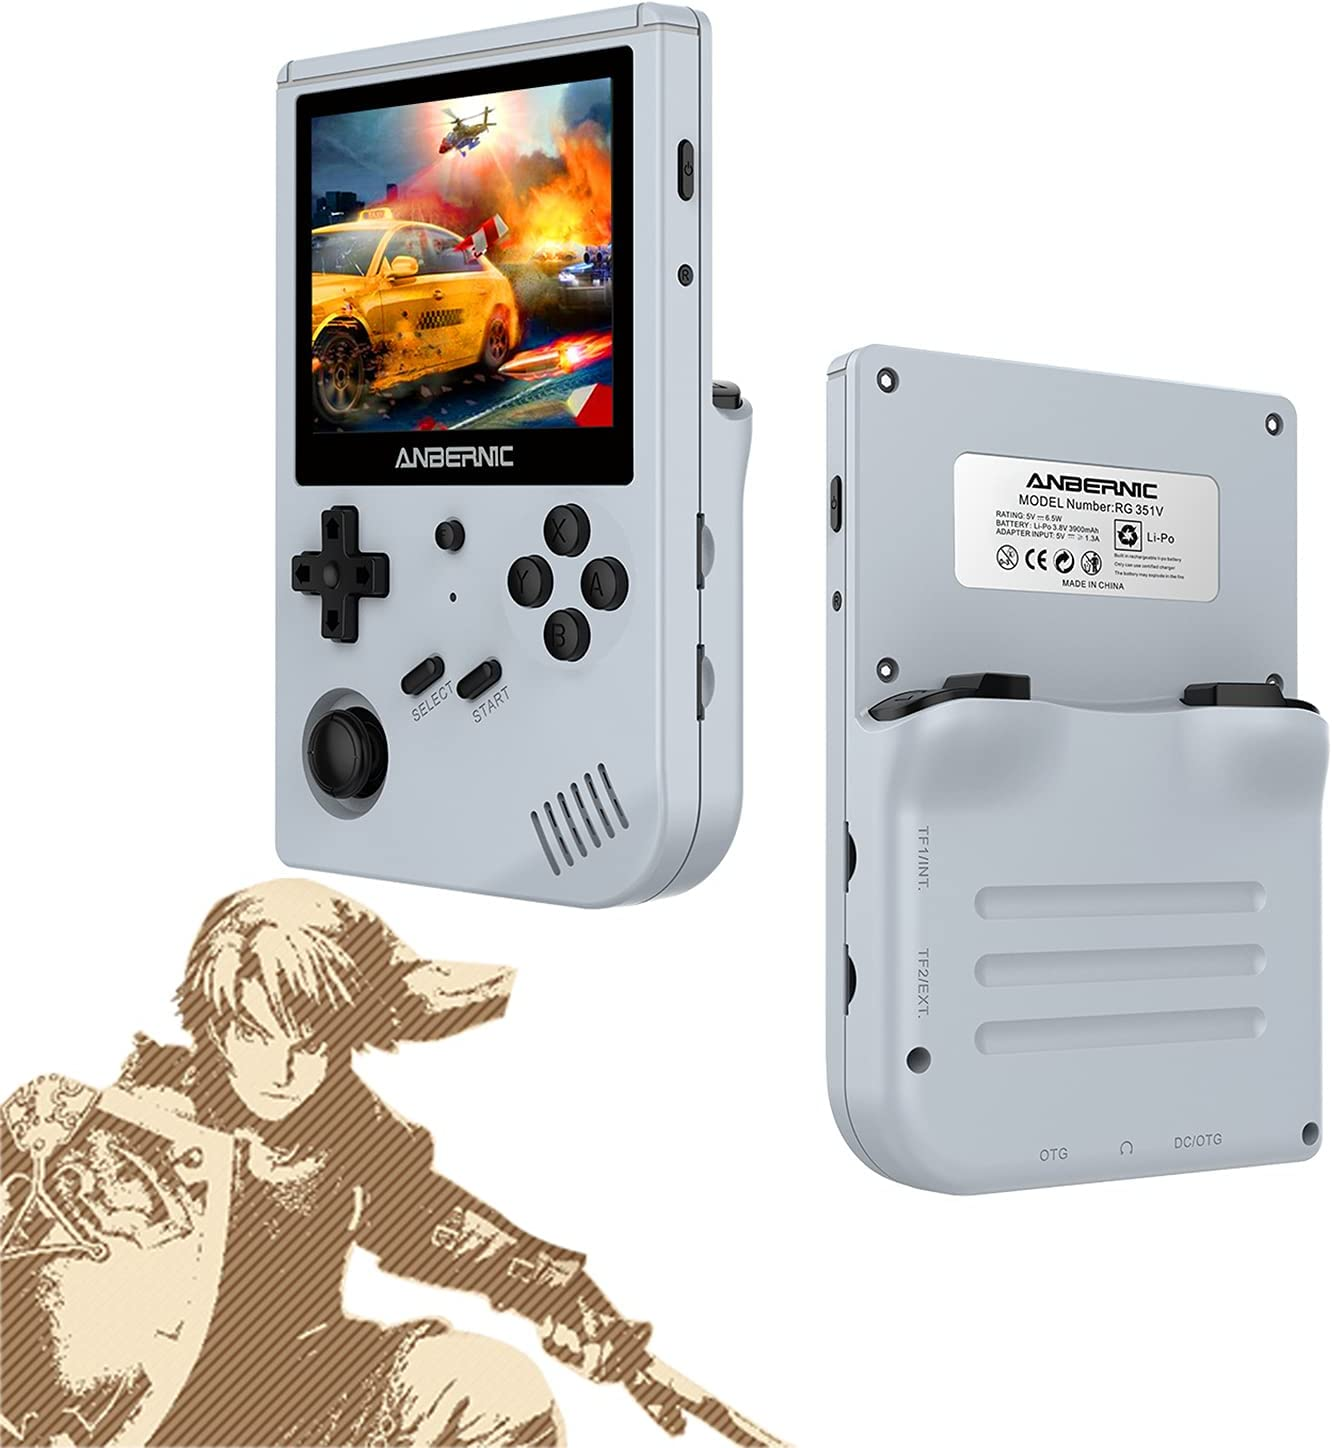 jenhmus Handheld Game Console - Selling 3.5 with Screen HD WiFi IPS Sale item inch